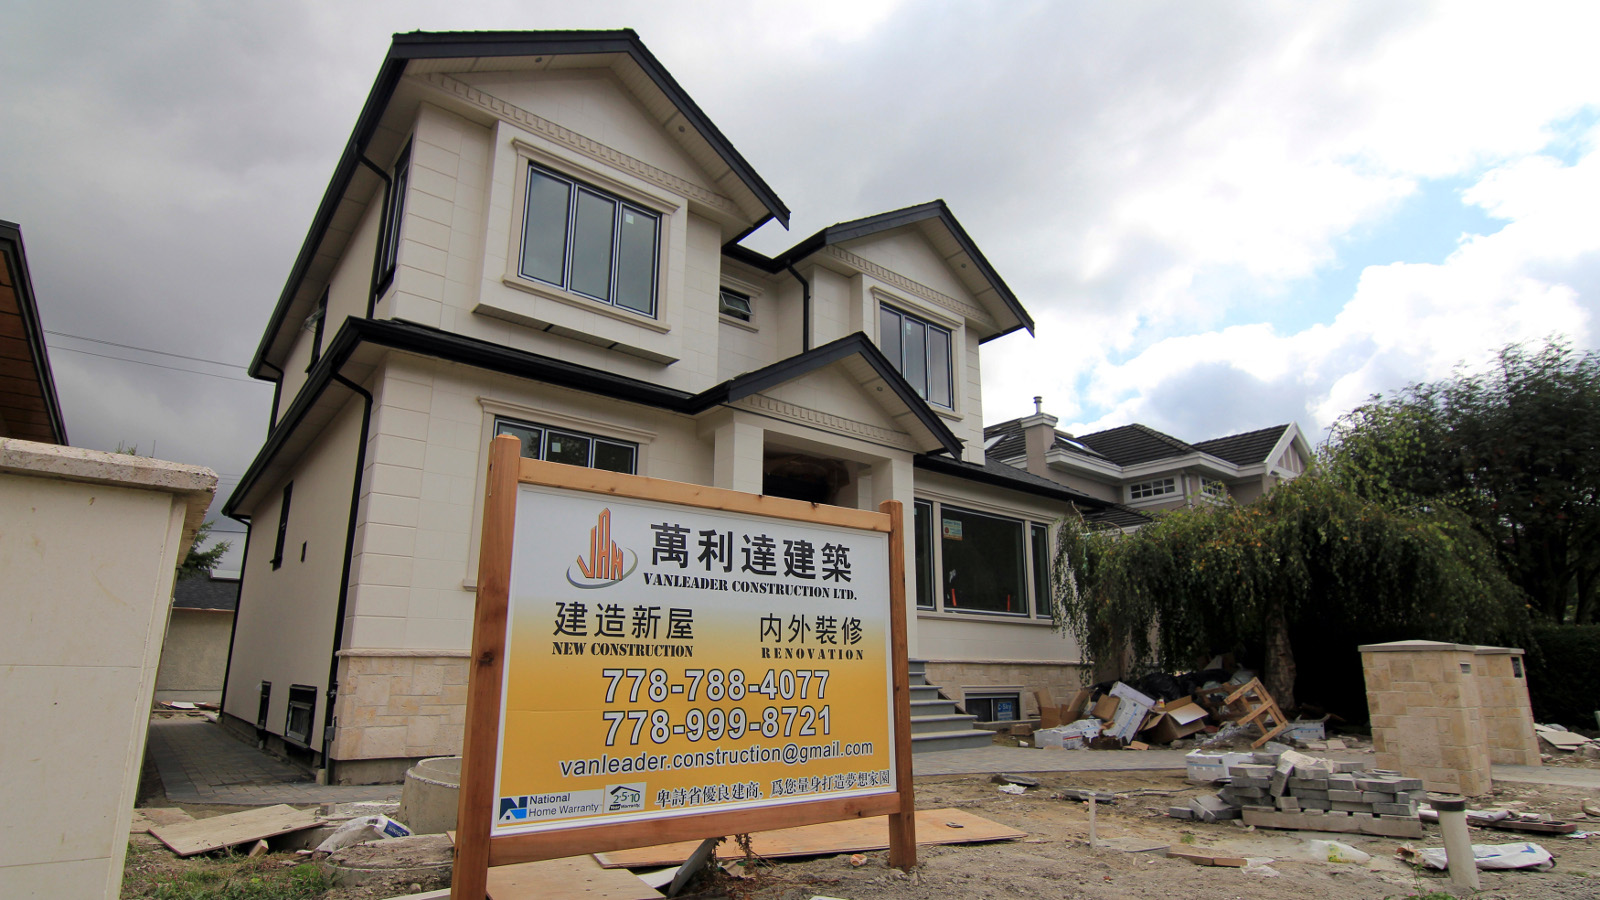 A contractor's sign stands outside a mansion currently under construction in a Vancouver neighbourhood popular with Chinese buyers September 9, 2014. Chinese investors' global hunt for prime real estate is helping drive Vancouver home prices to record highs and the city, long among top destinations for wealthy mainland buyers, is feeling the bonanza's unwelcome side-effects. The latest wave of Chinese money is flowing into luxury hot spots. But it has also started driving up housing costs elsewhere in a city which already ranks as North America's least affordable urban market. Picture taken September 9.